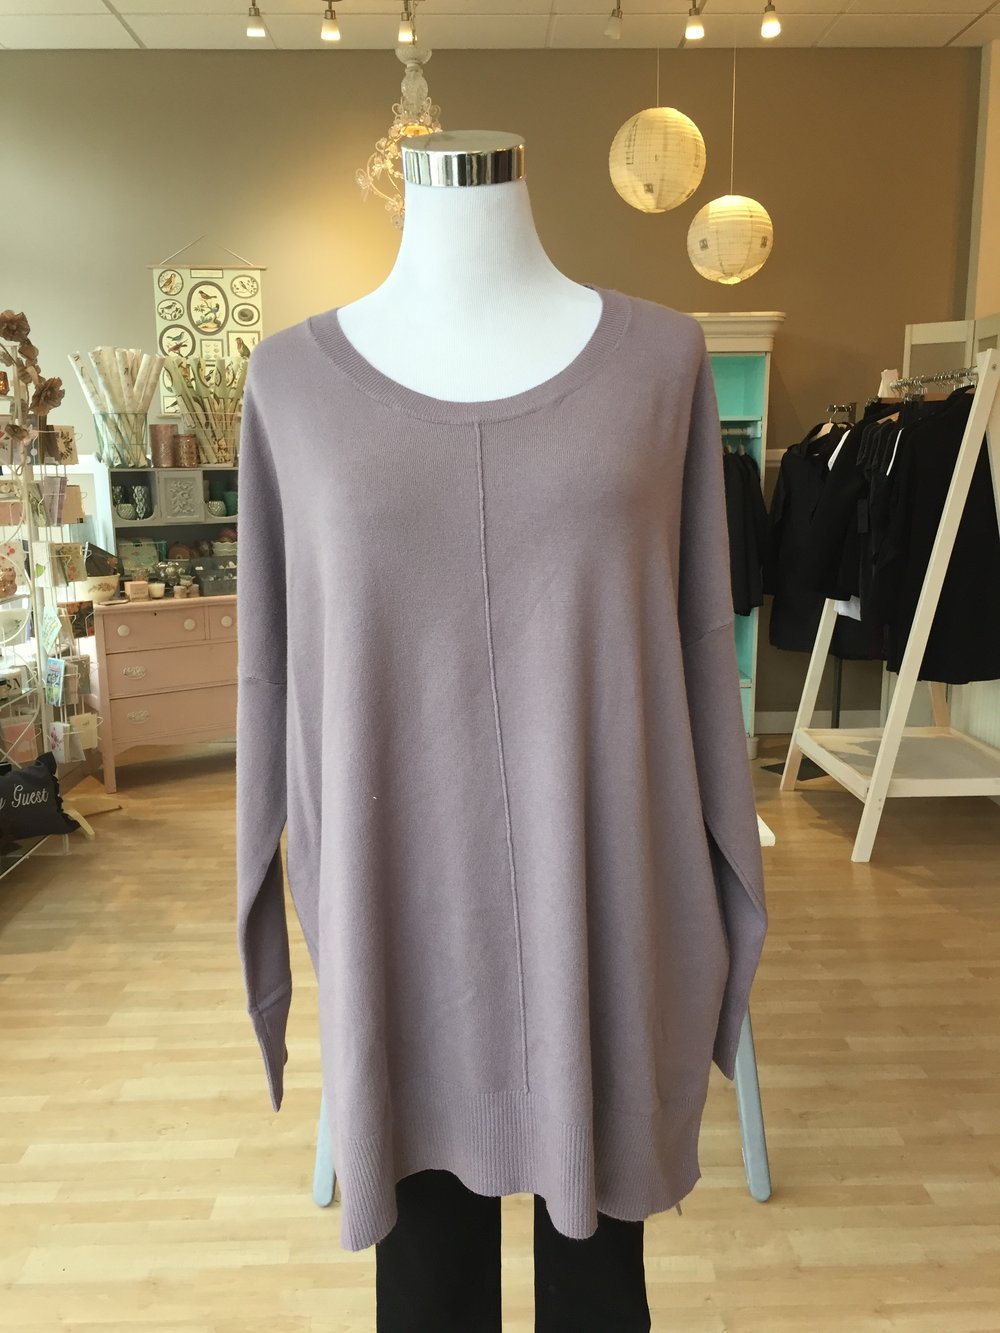 New Dreamers! Scoop Neck $42 (black, lilac)